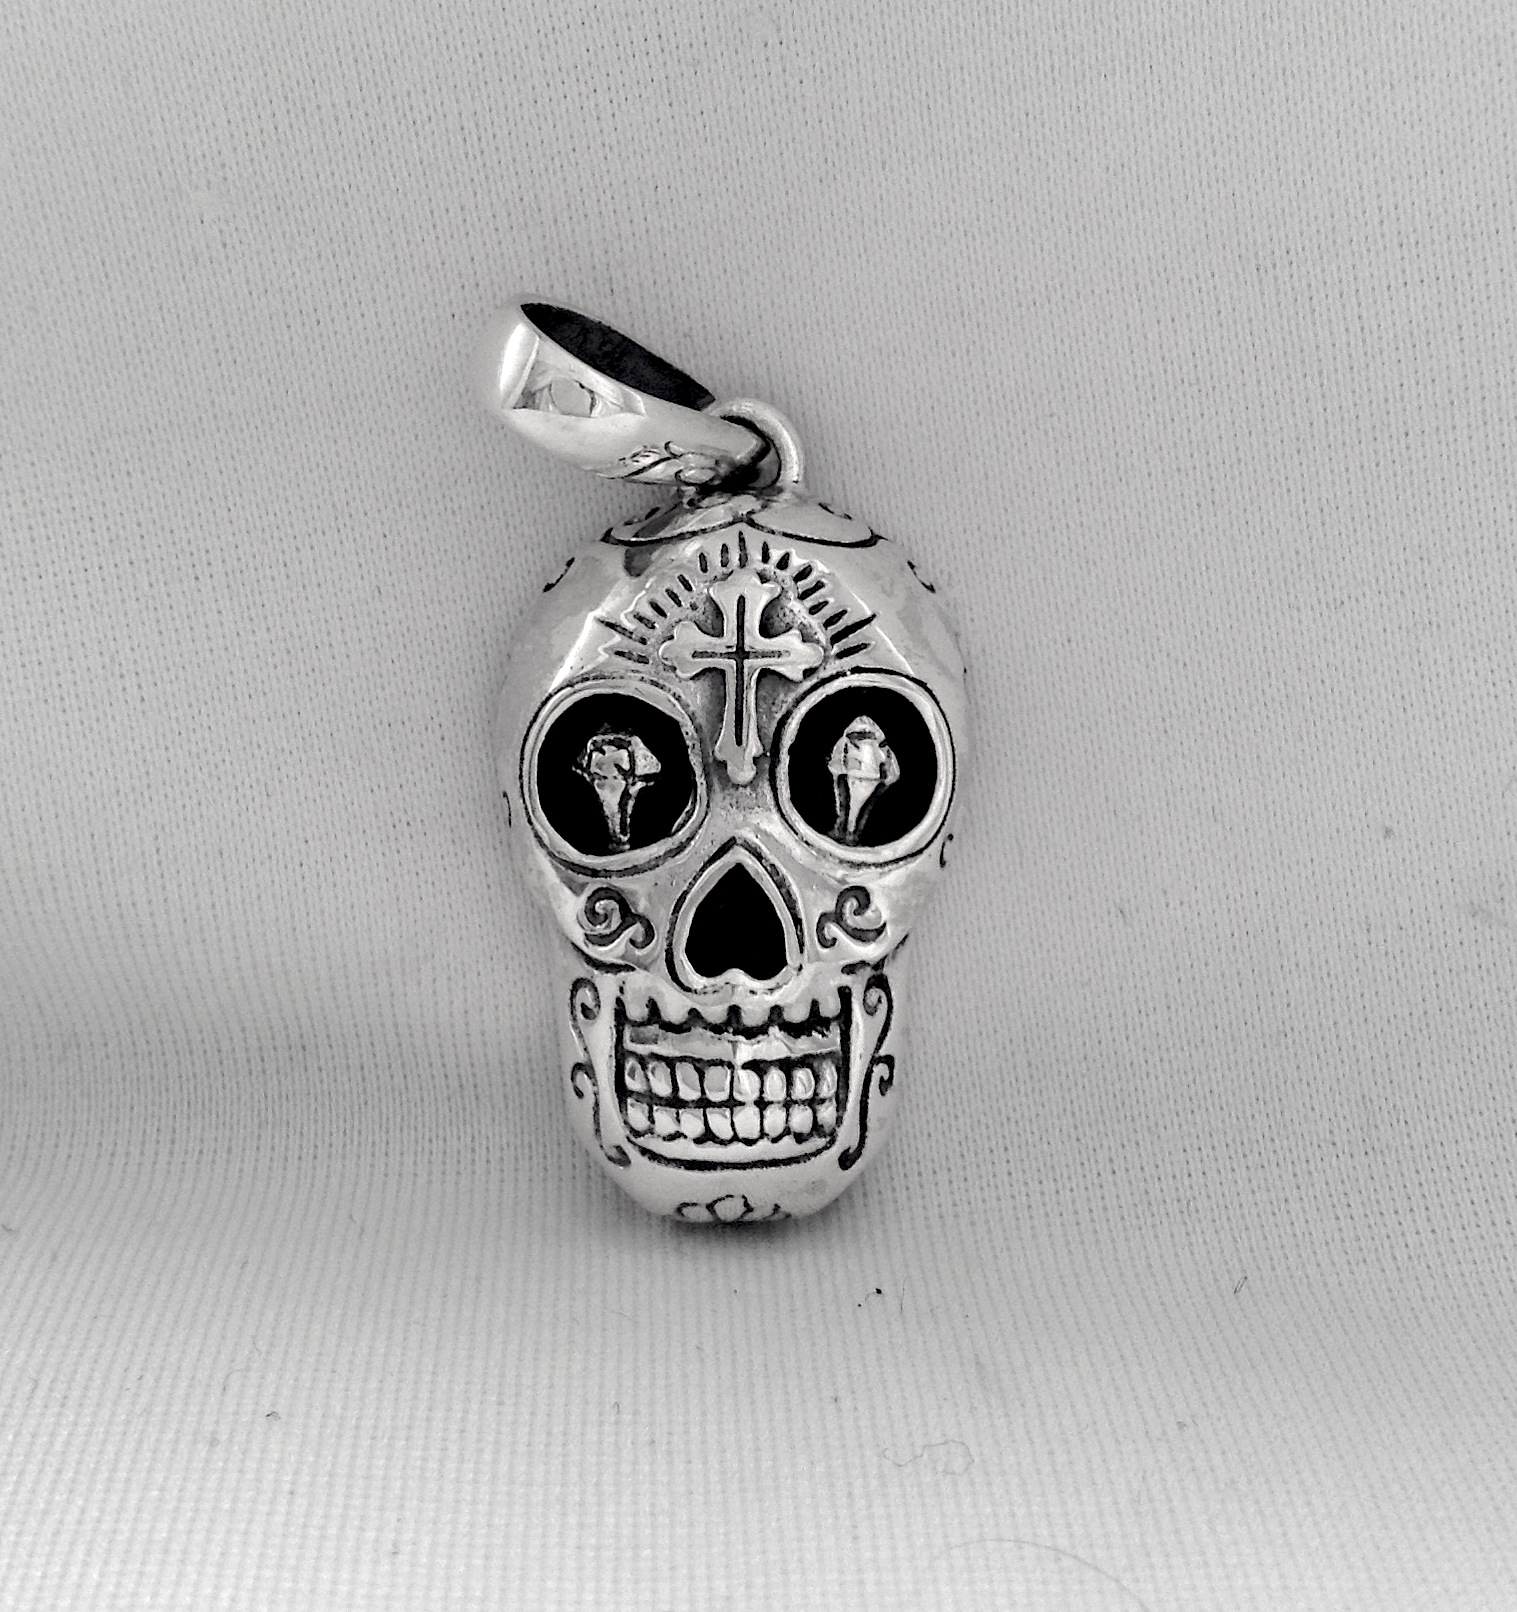 skulls and pin necklace pendant small mexican skull pendants sugaring sugar